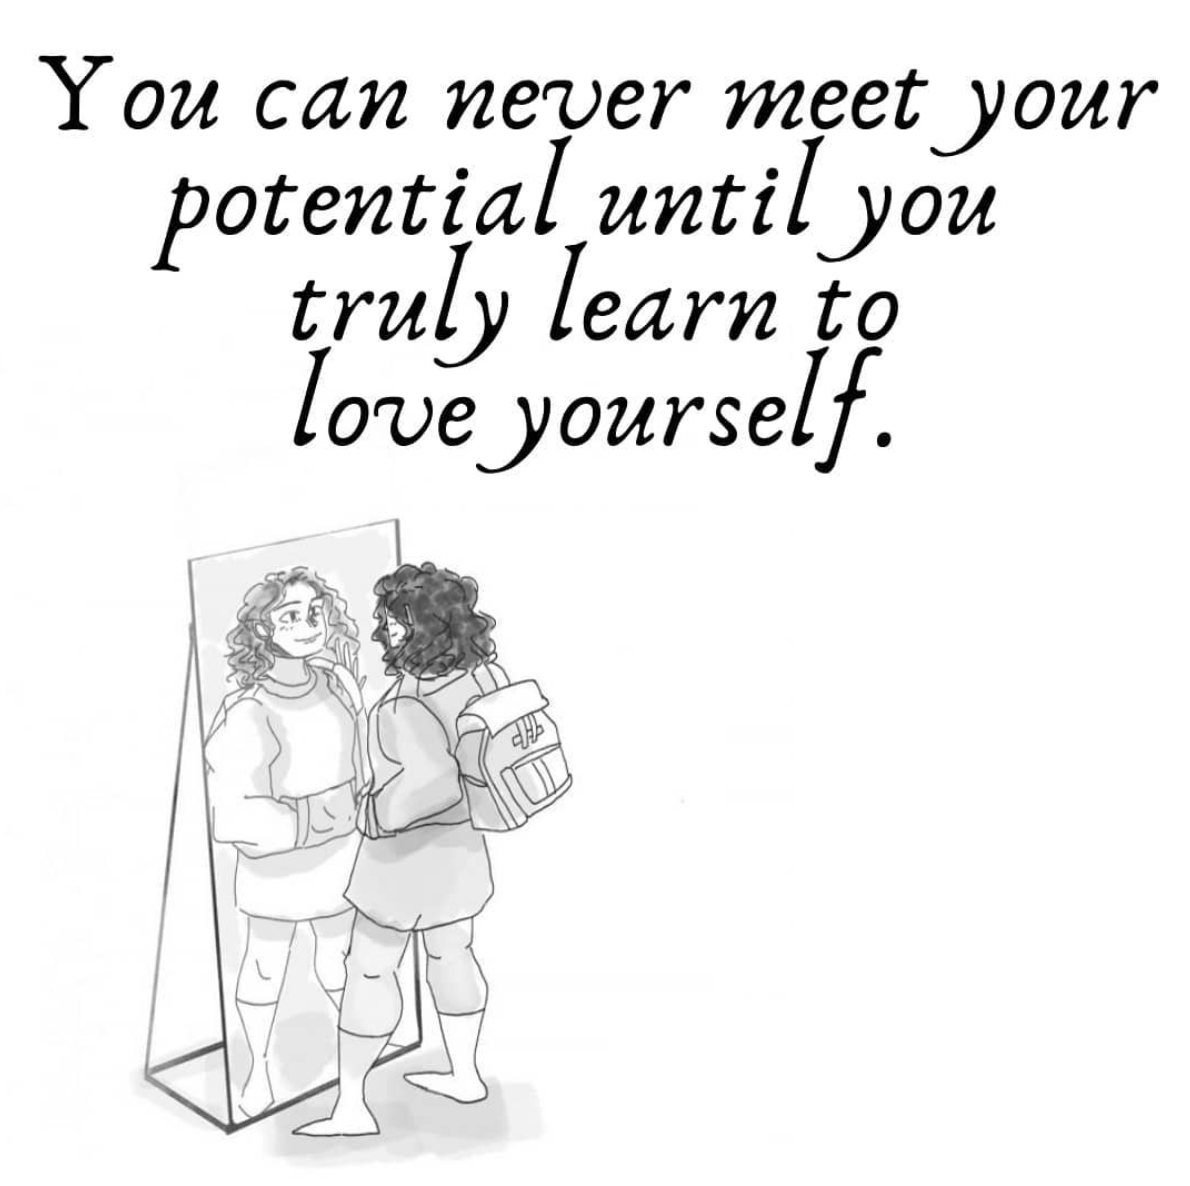 [Image] You can never meet your potential until you truly learn to love yourself.